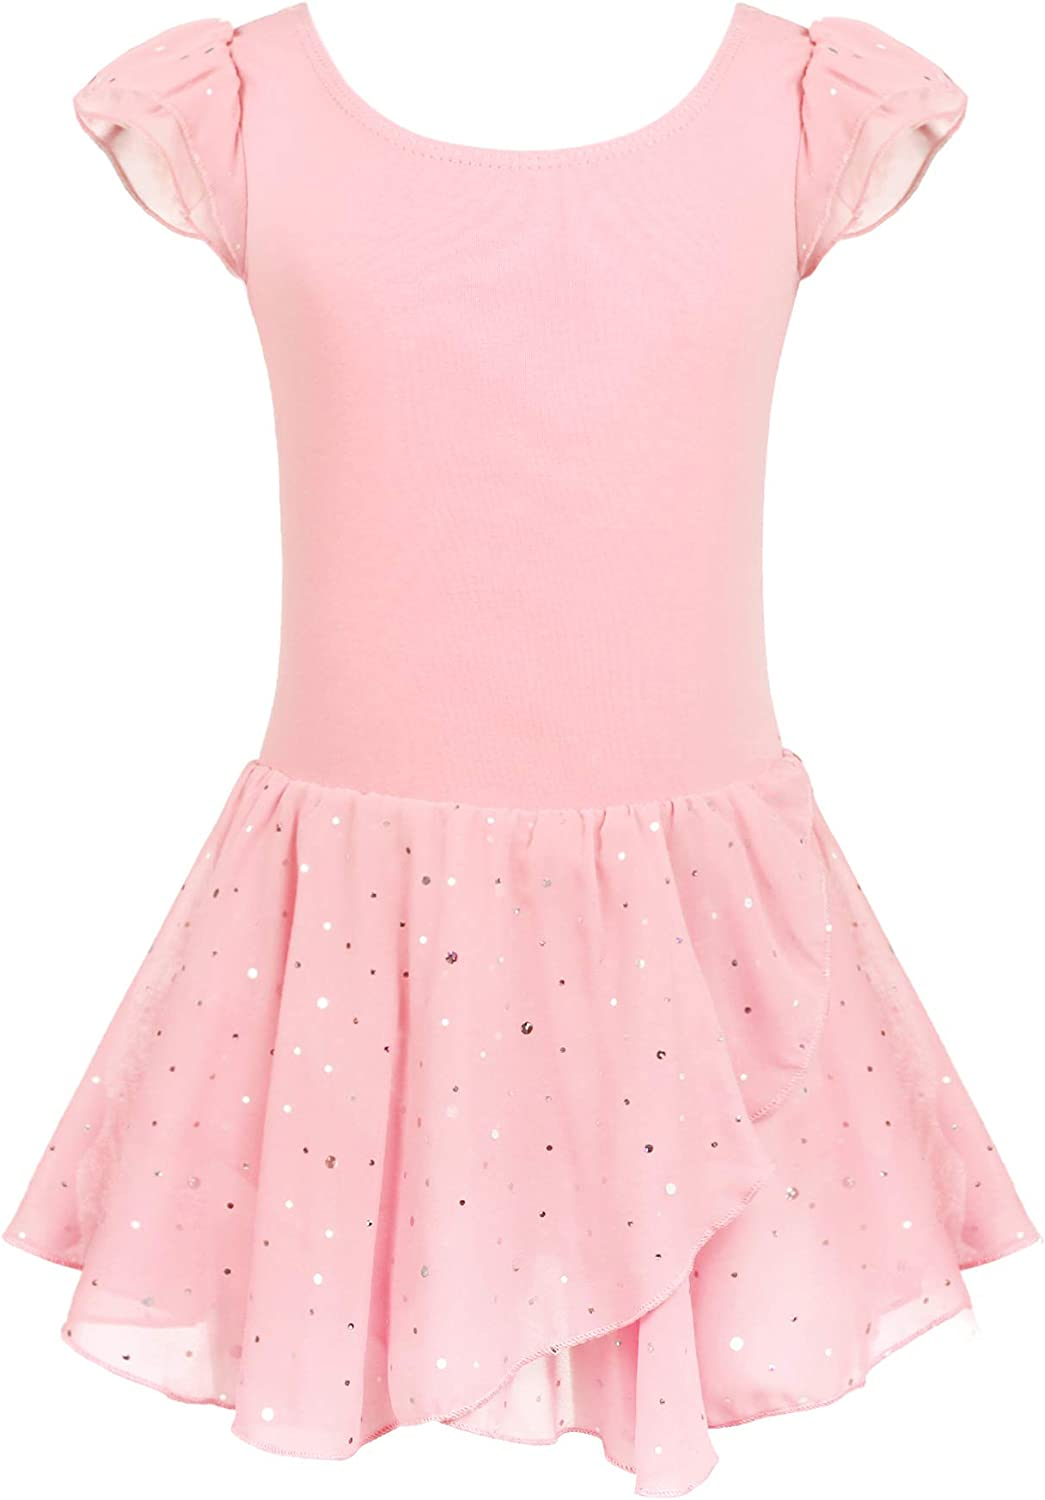 Zaclotre Girls Dance Skirt Ballet